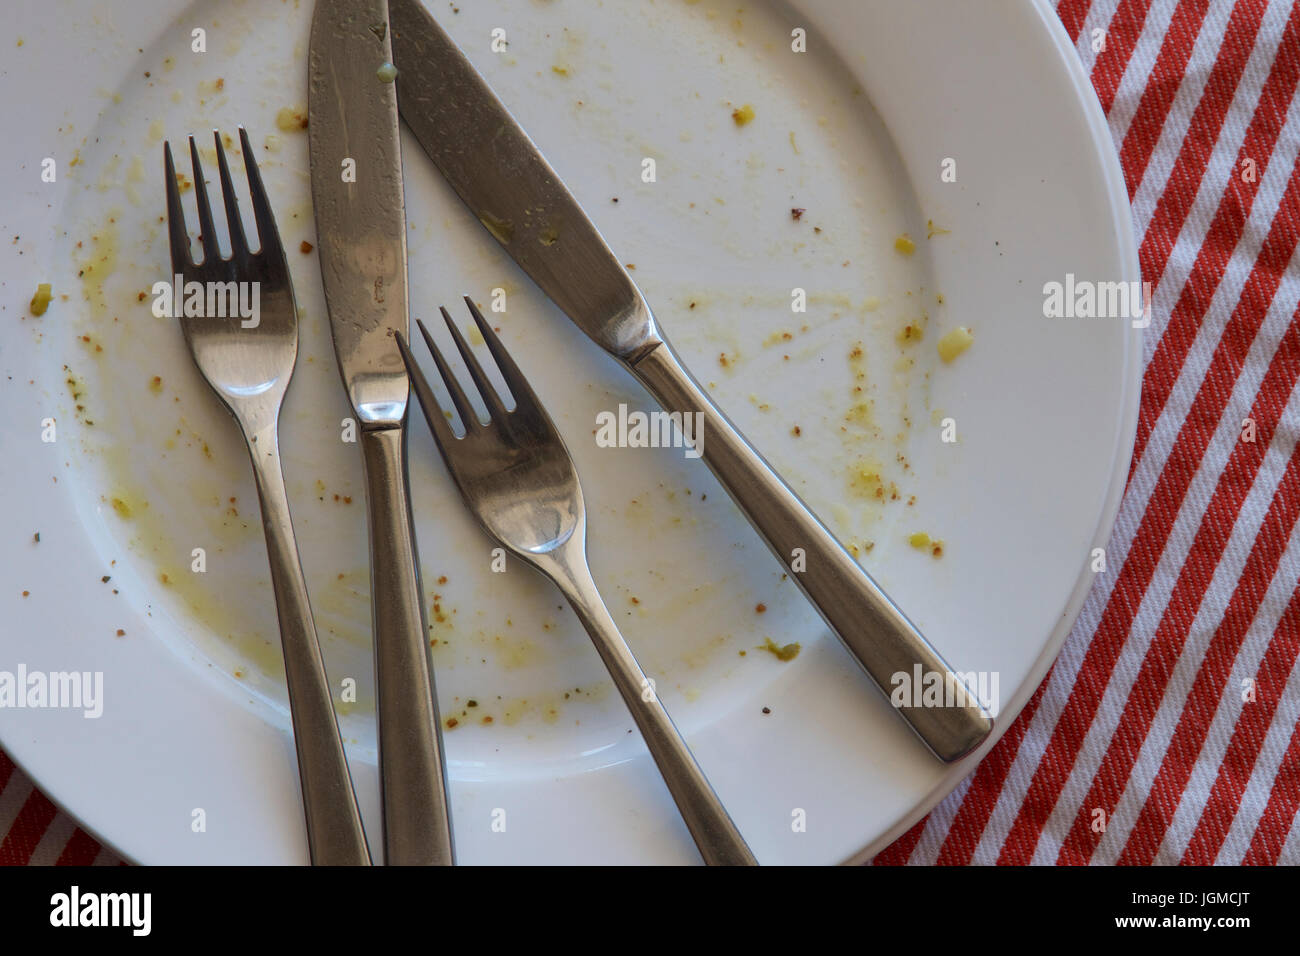 dirty dinner plates stockfotos dirty dinner plates bilder alamy. Black Bedroom Furniture Sets. Home Design Ideas